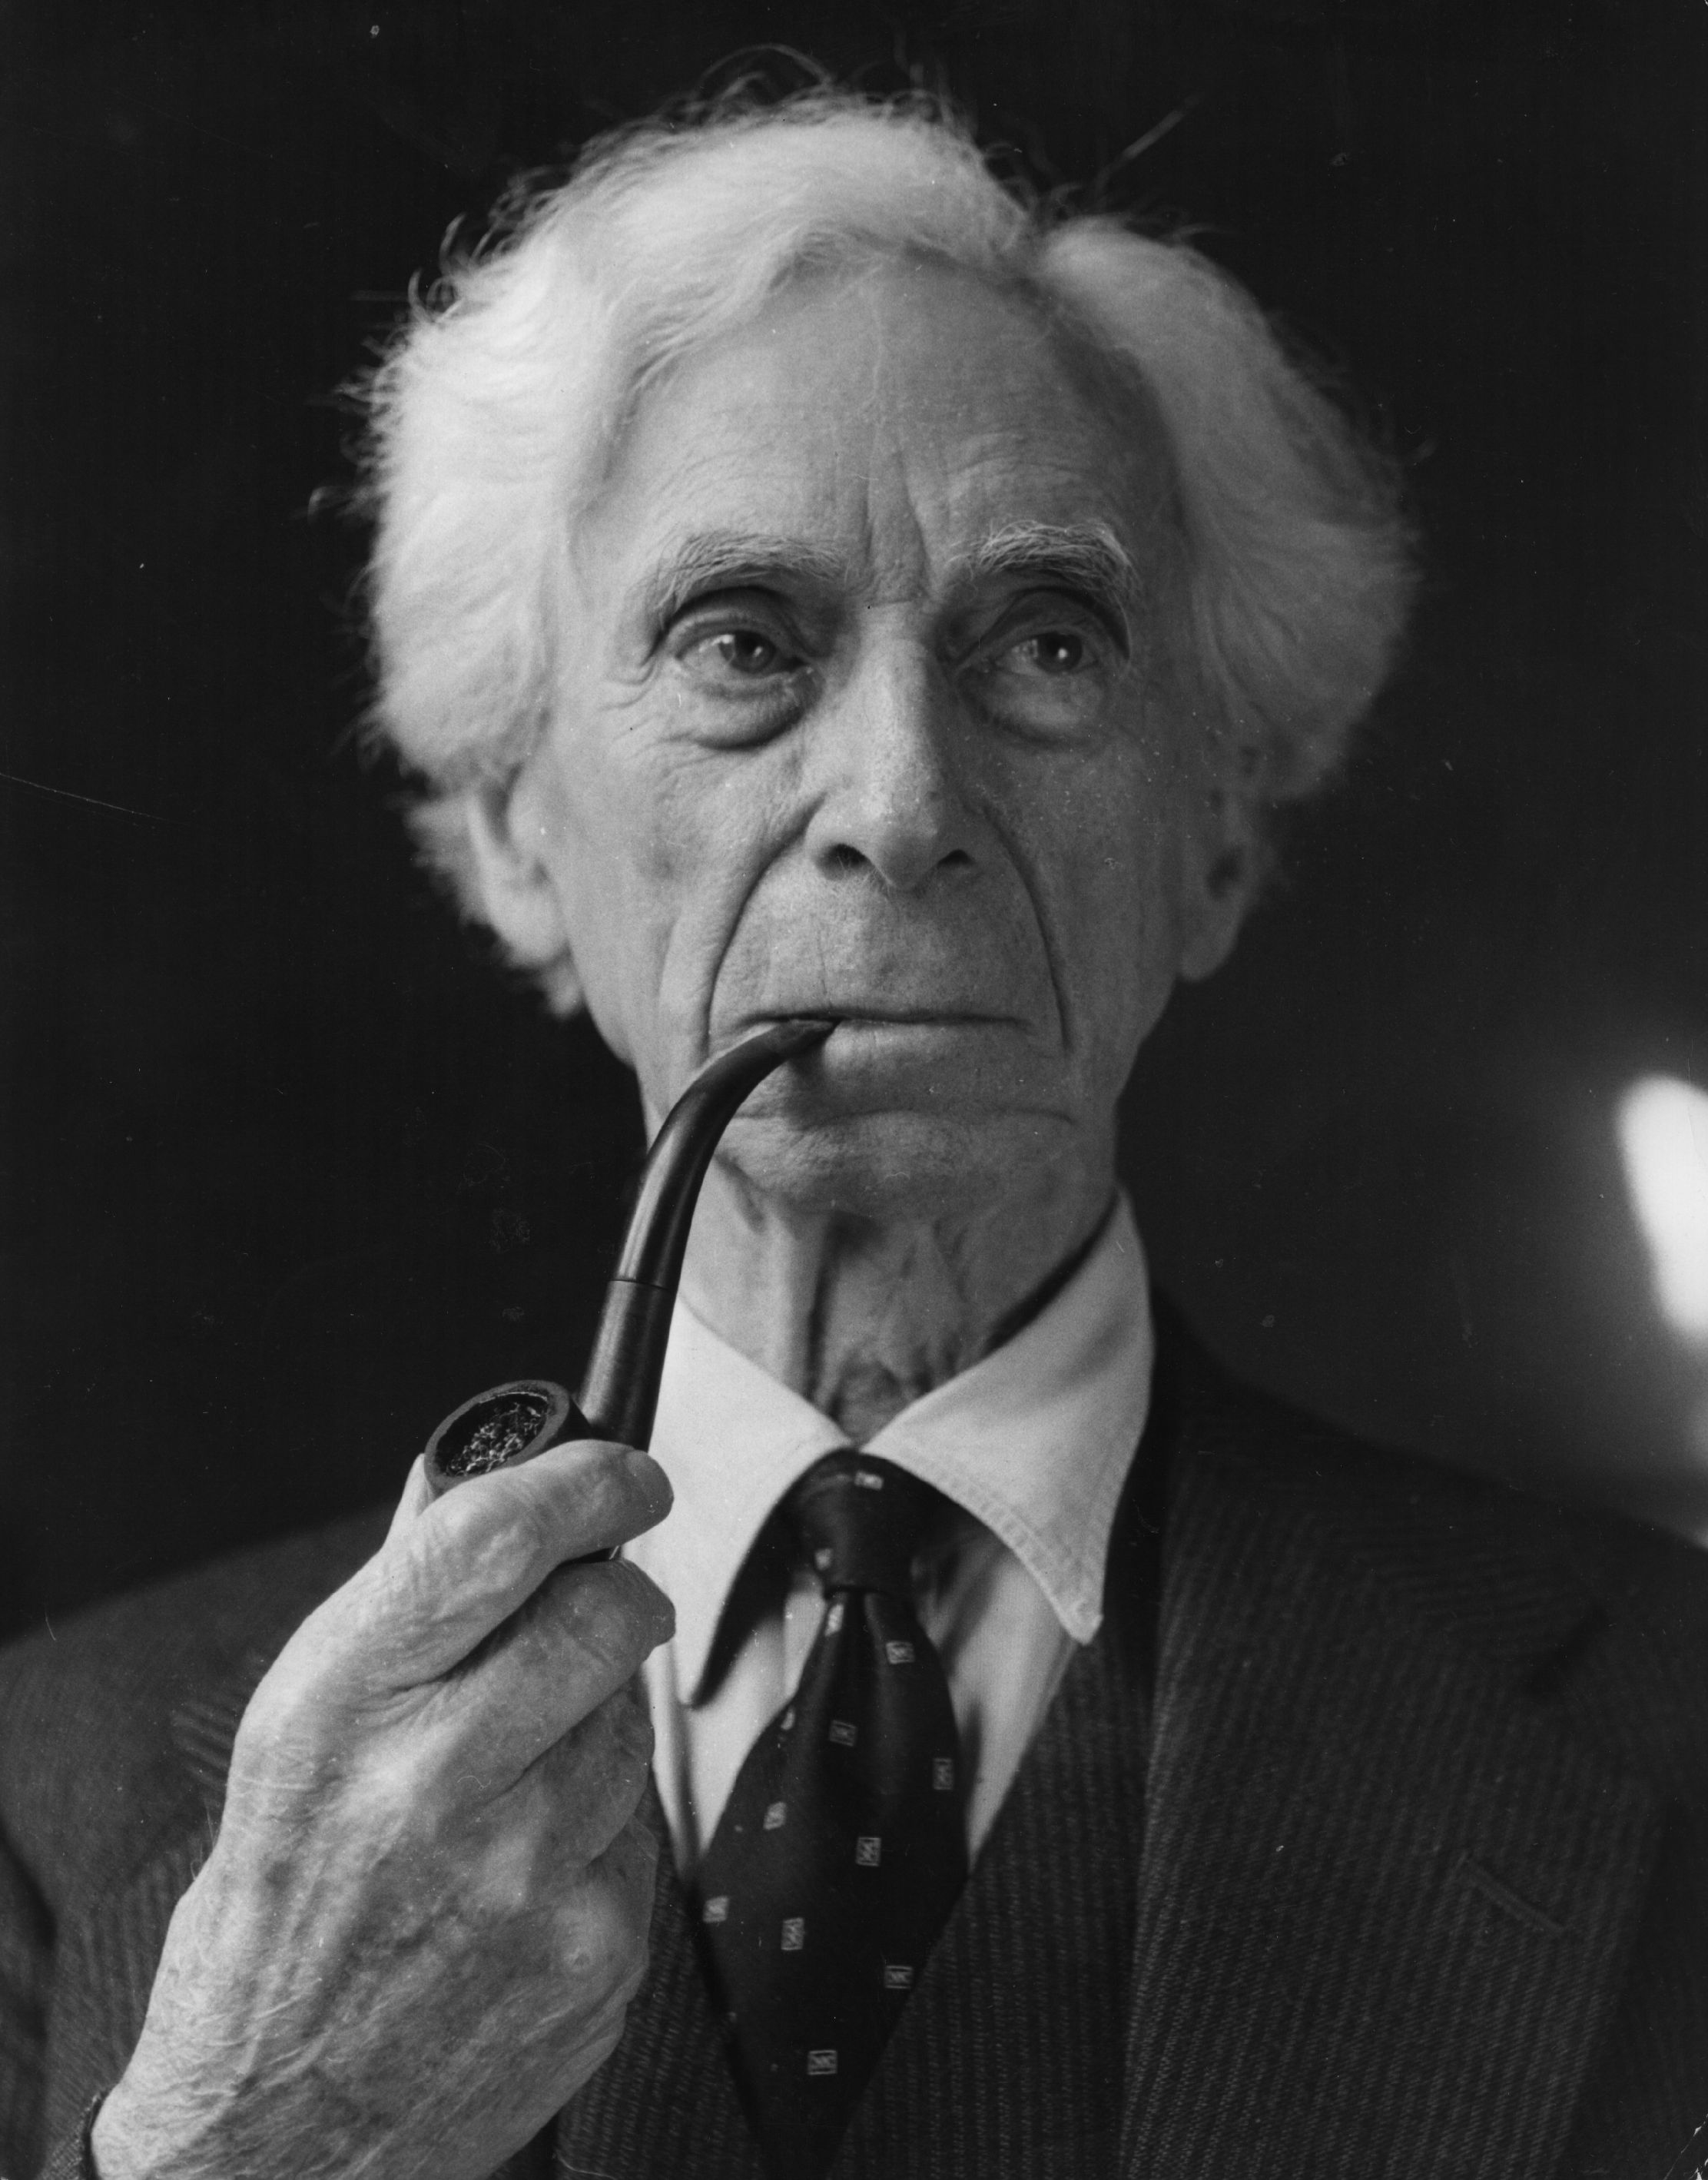 17th June 1957, British mathematician and philosopher Bertrand Russell (1872 - 1970). (Photo by John Drysdale/Keystone/Getty Images)